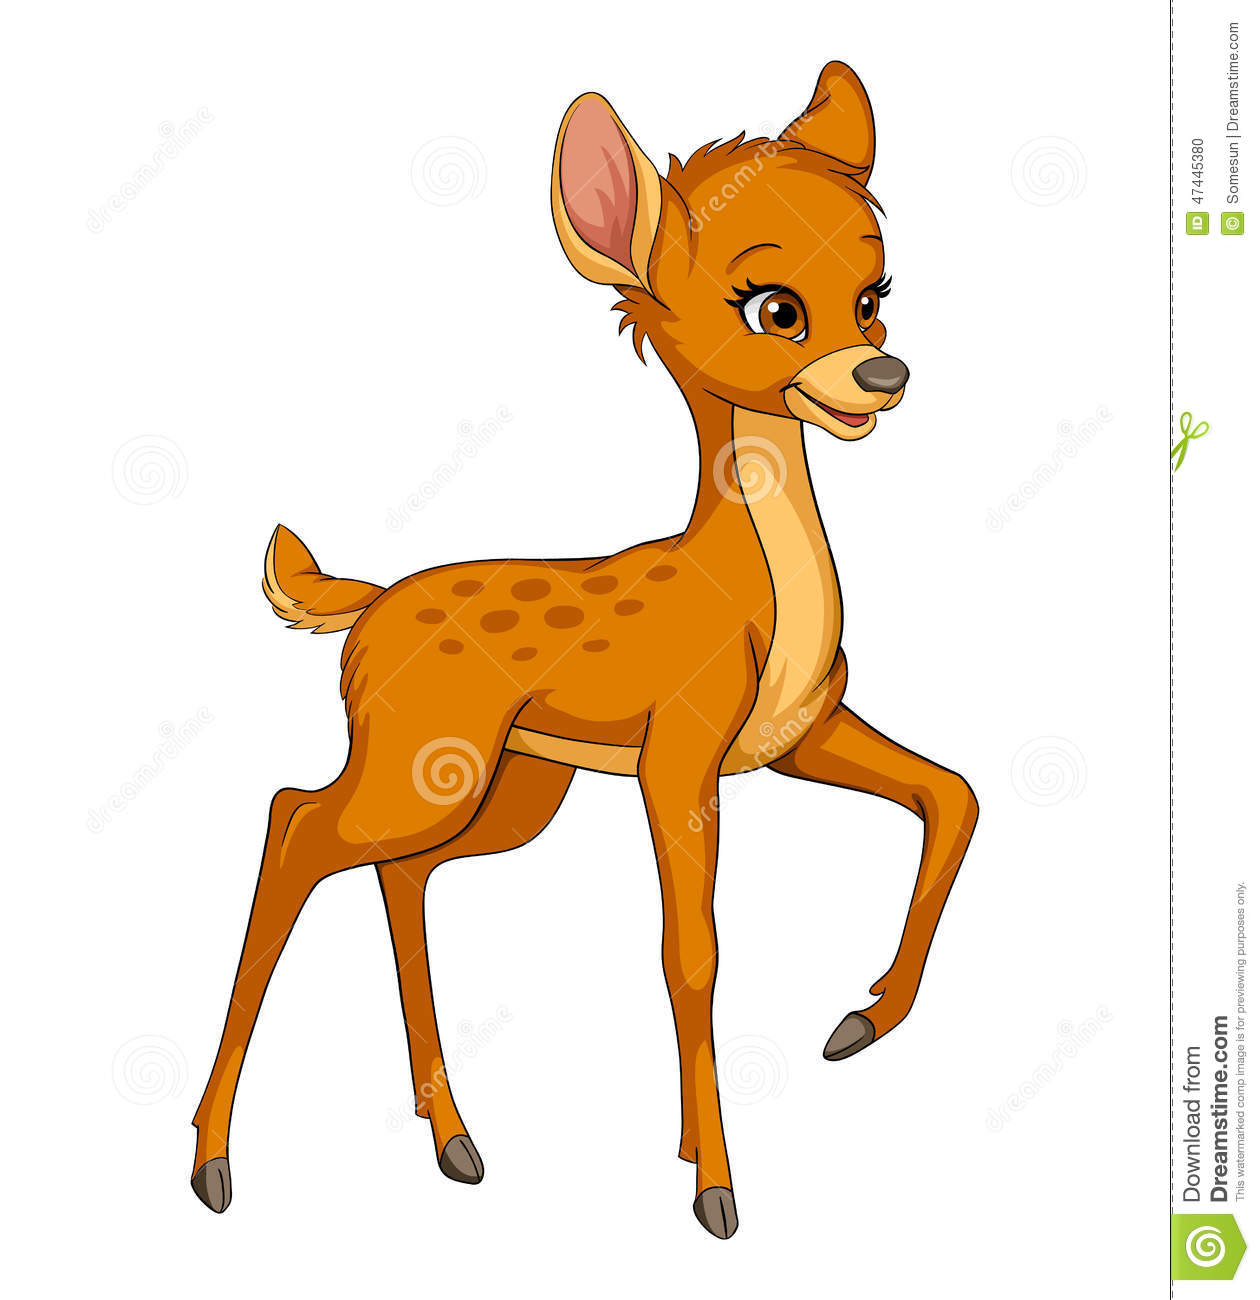 Fawn clipart #16, Download drawings